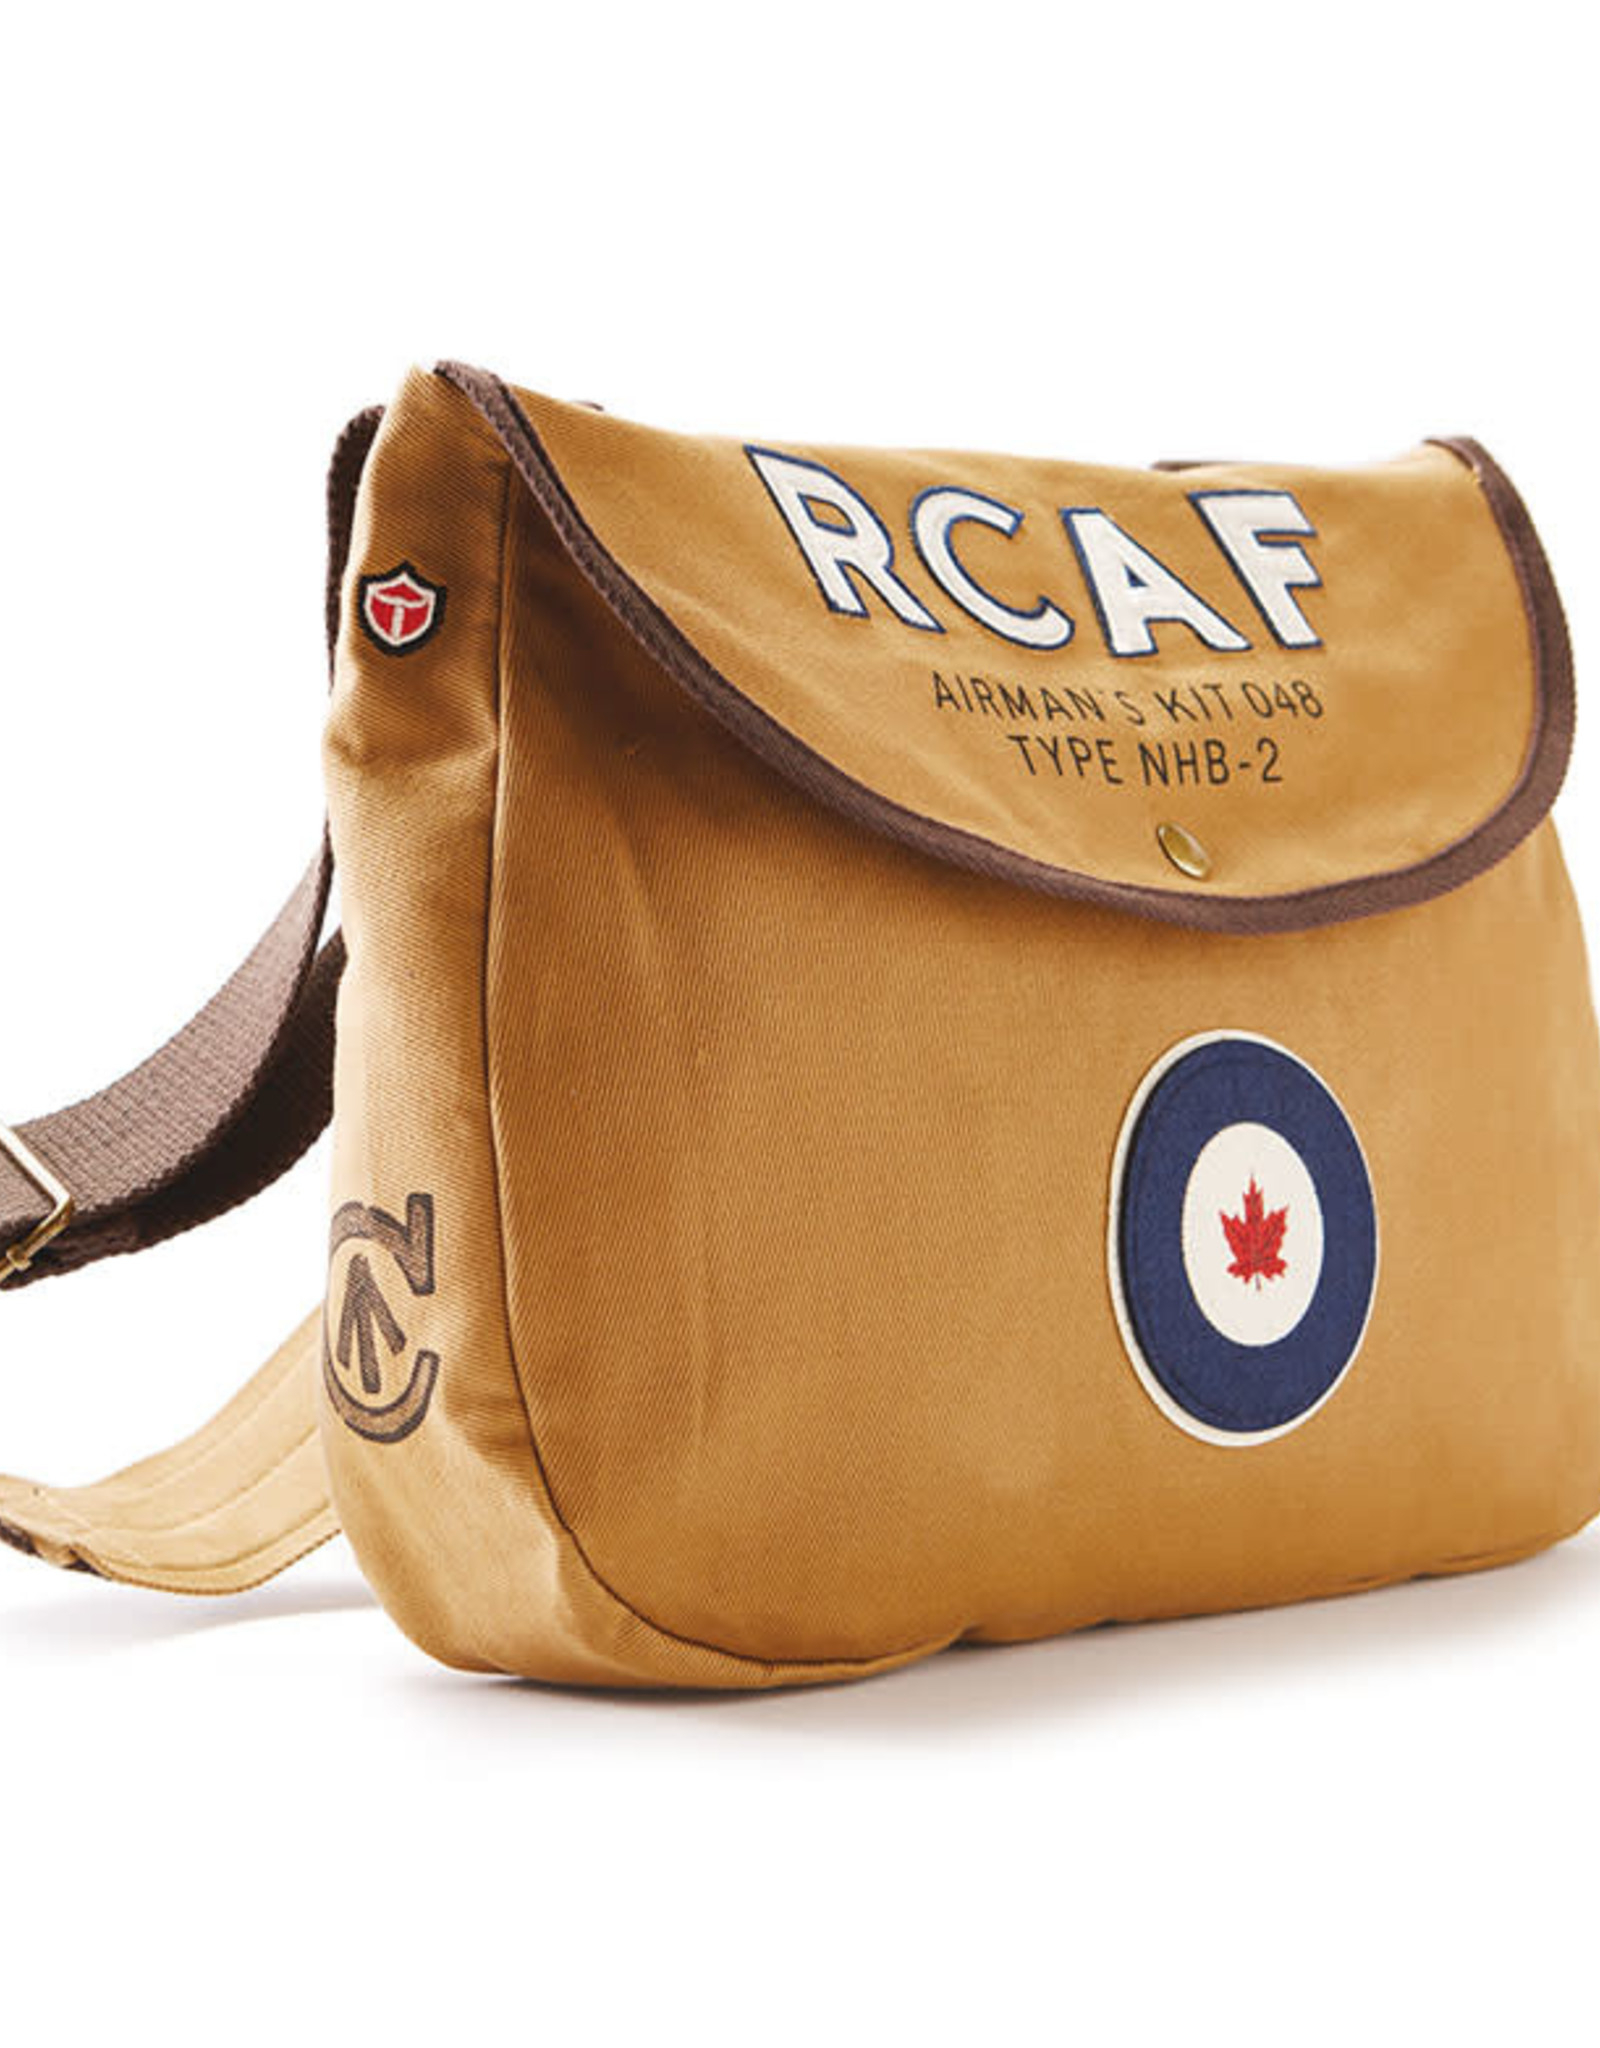 RED CANOE Red Canoe RCAF Shoulder Bag